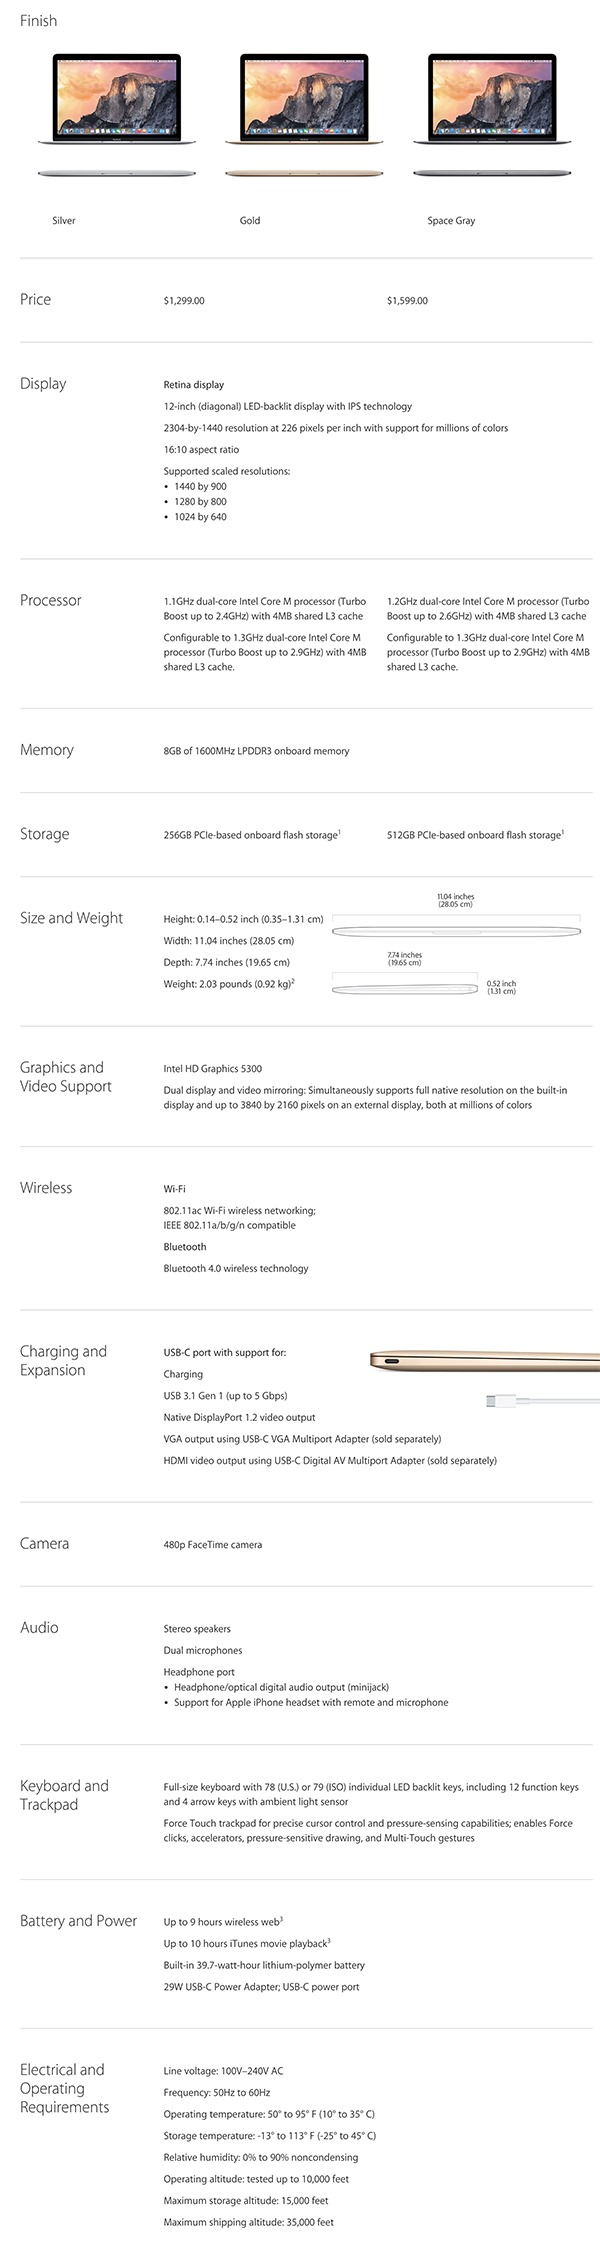 MacBook 2015 tech specs